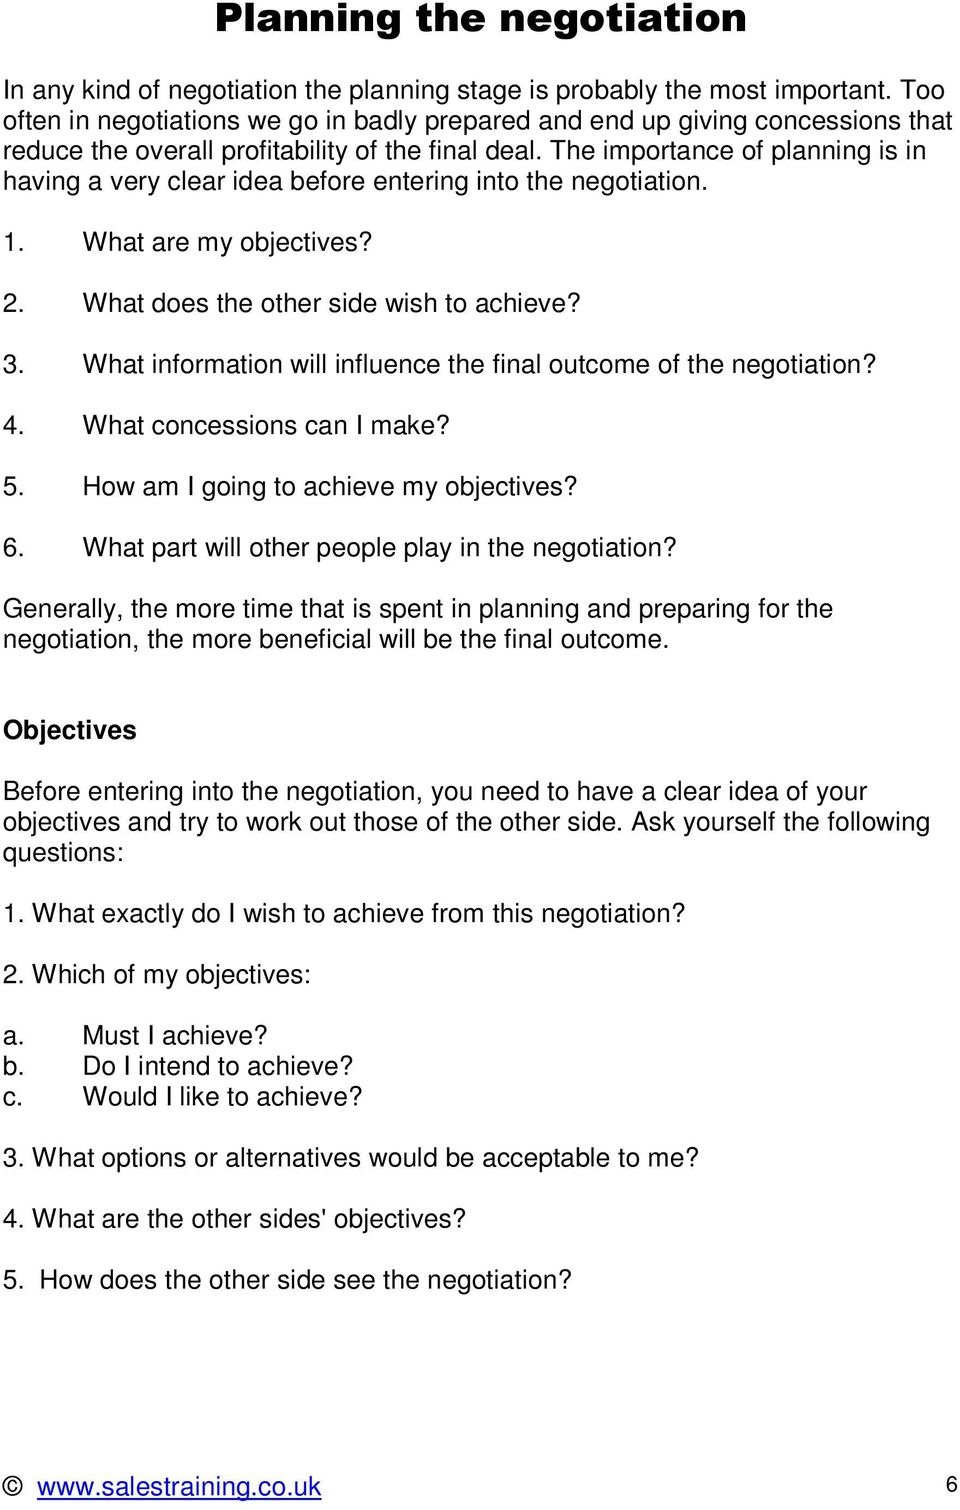 The importance of planning is in having a very clear idea before entering into the negotiation. 1. What are my objectives? 2. What does the other side wish to achieve? 3.